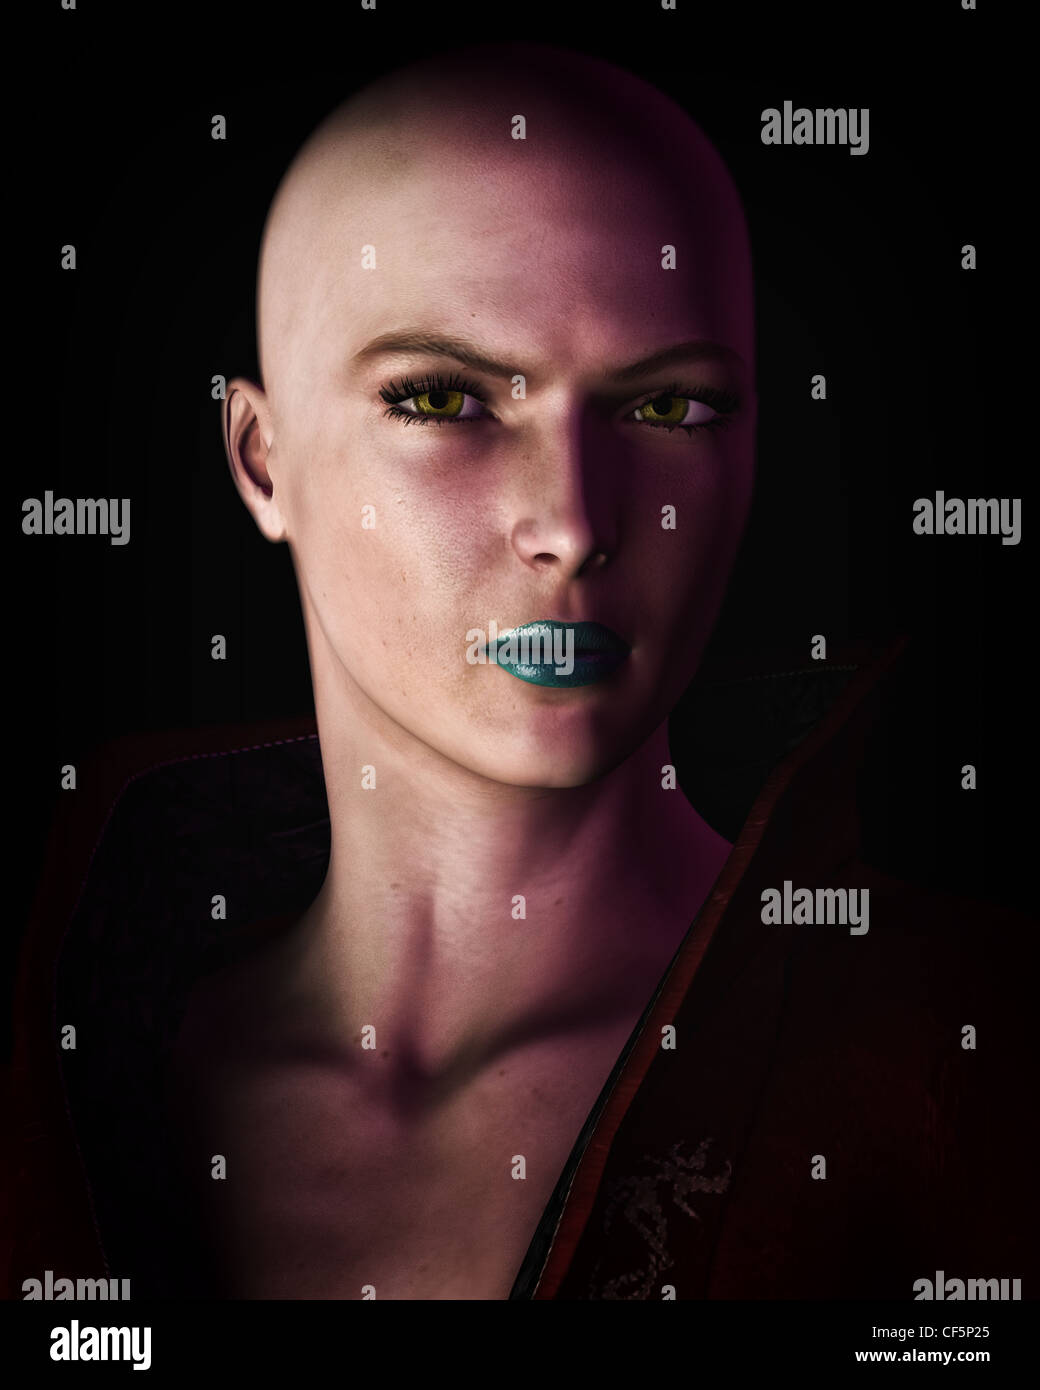 Digital illustration of a strong, futuristic sci-fi looking bald woman in heavy dark shadow. - Stock Image